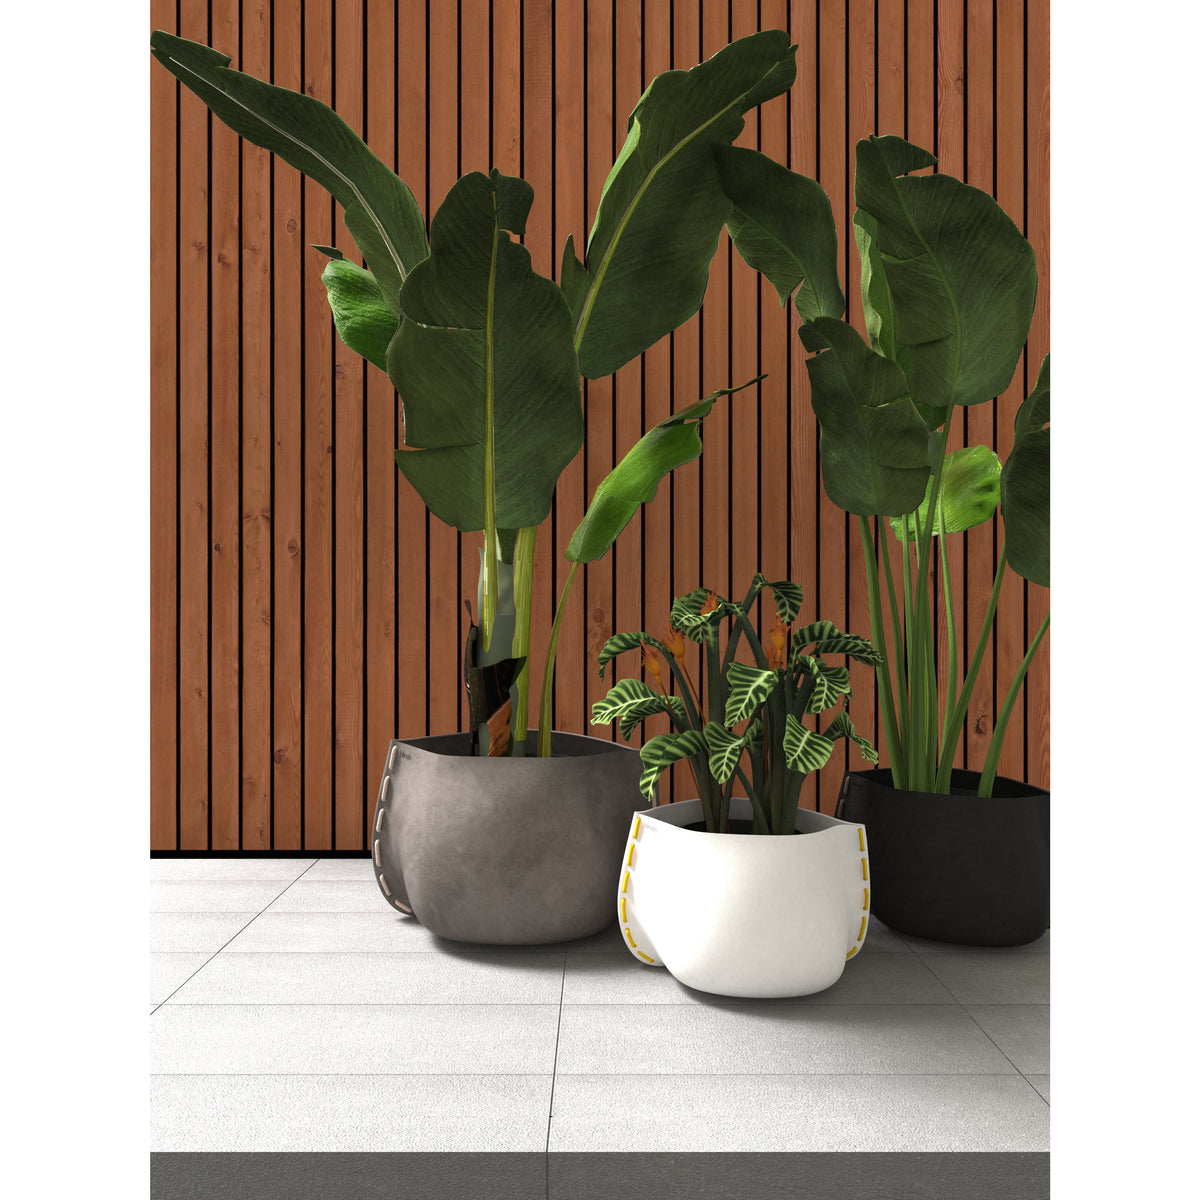 Stitch 125 Designer Pot Plant - Outdoor Living Essentials